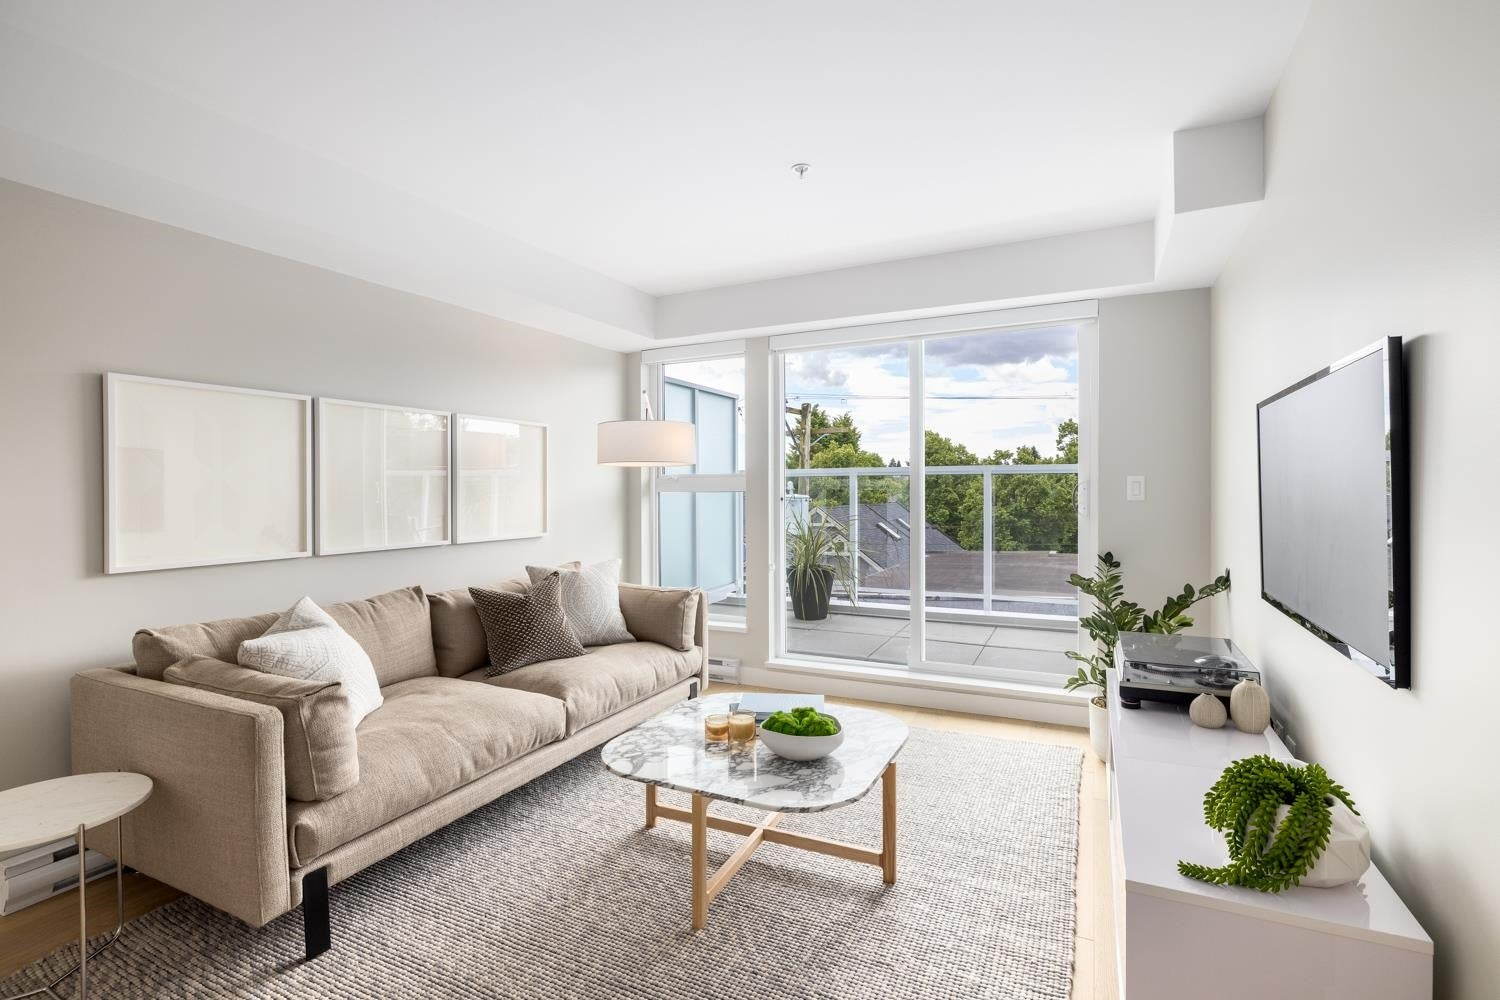 408 2508 FRASER STREET - Mount Pleasant VE Apartment/Condo for sale, 1 Bedroom (R2594774)